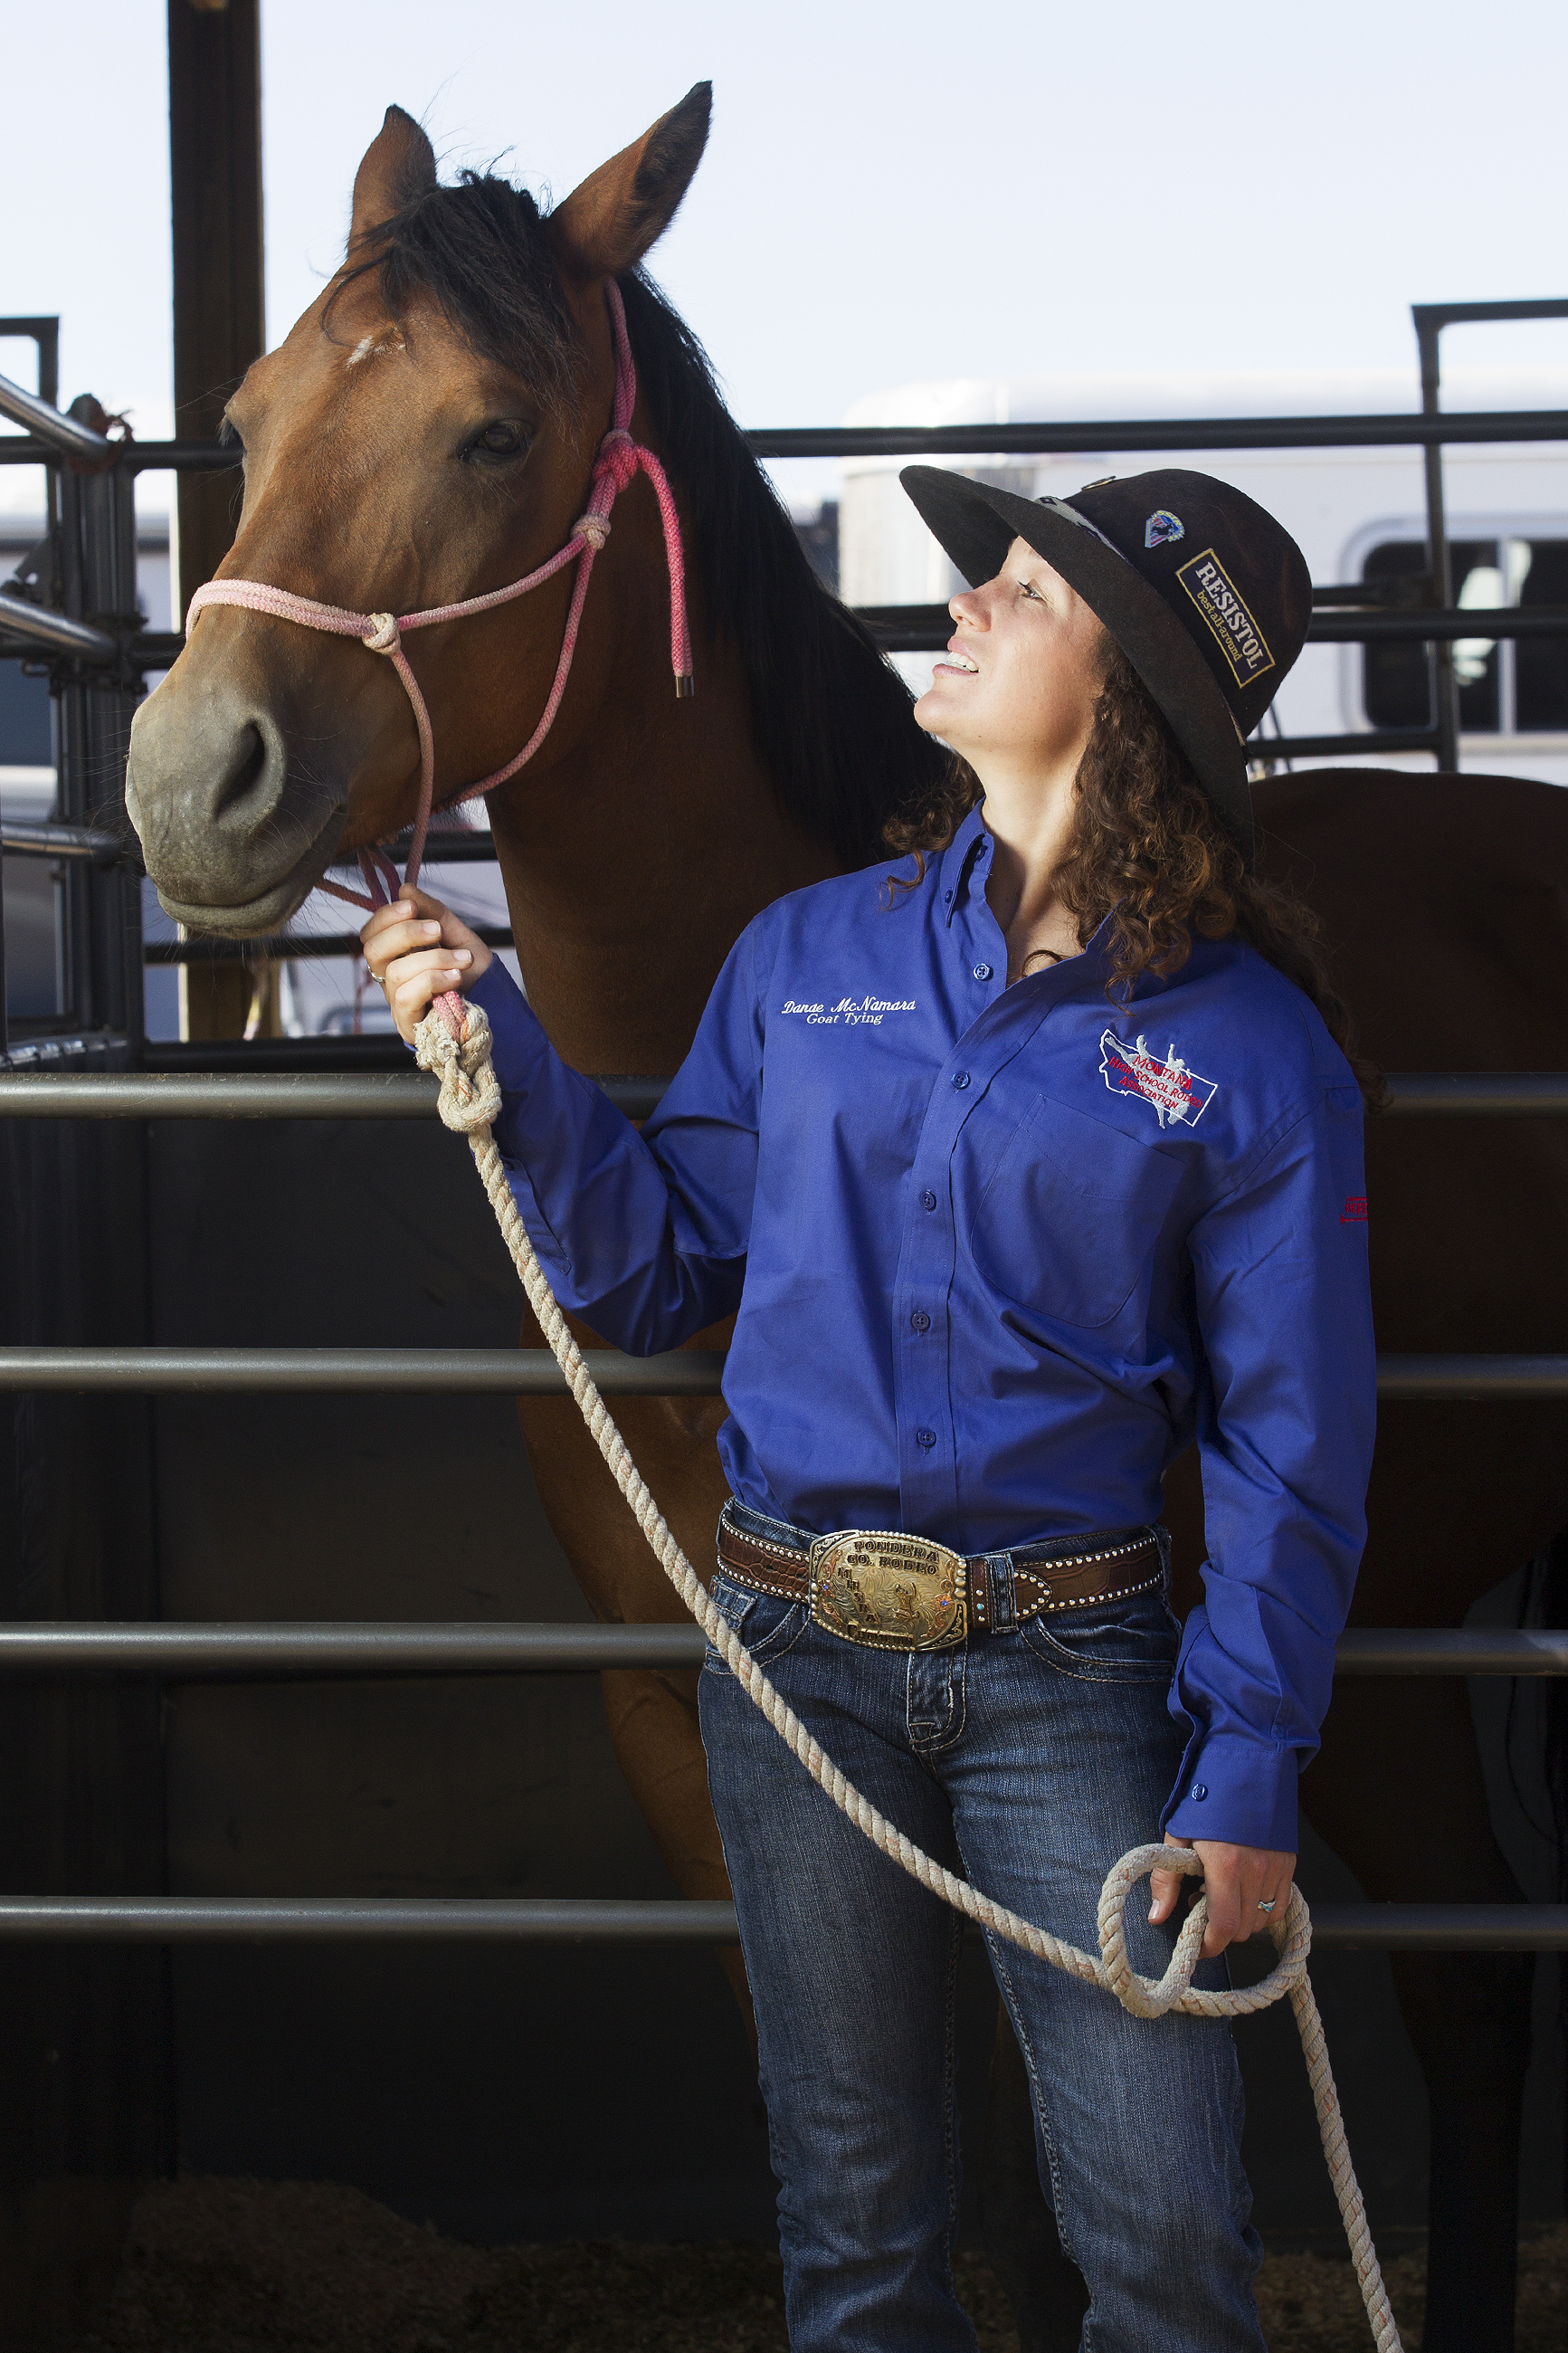 Danae McNamera stands with her horse Buckles in the stalls at Cam-plex Sunday morning.